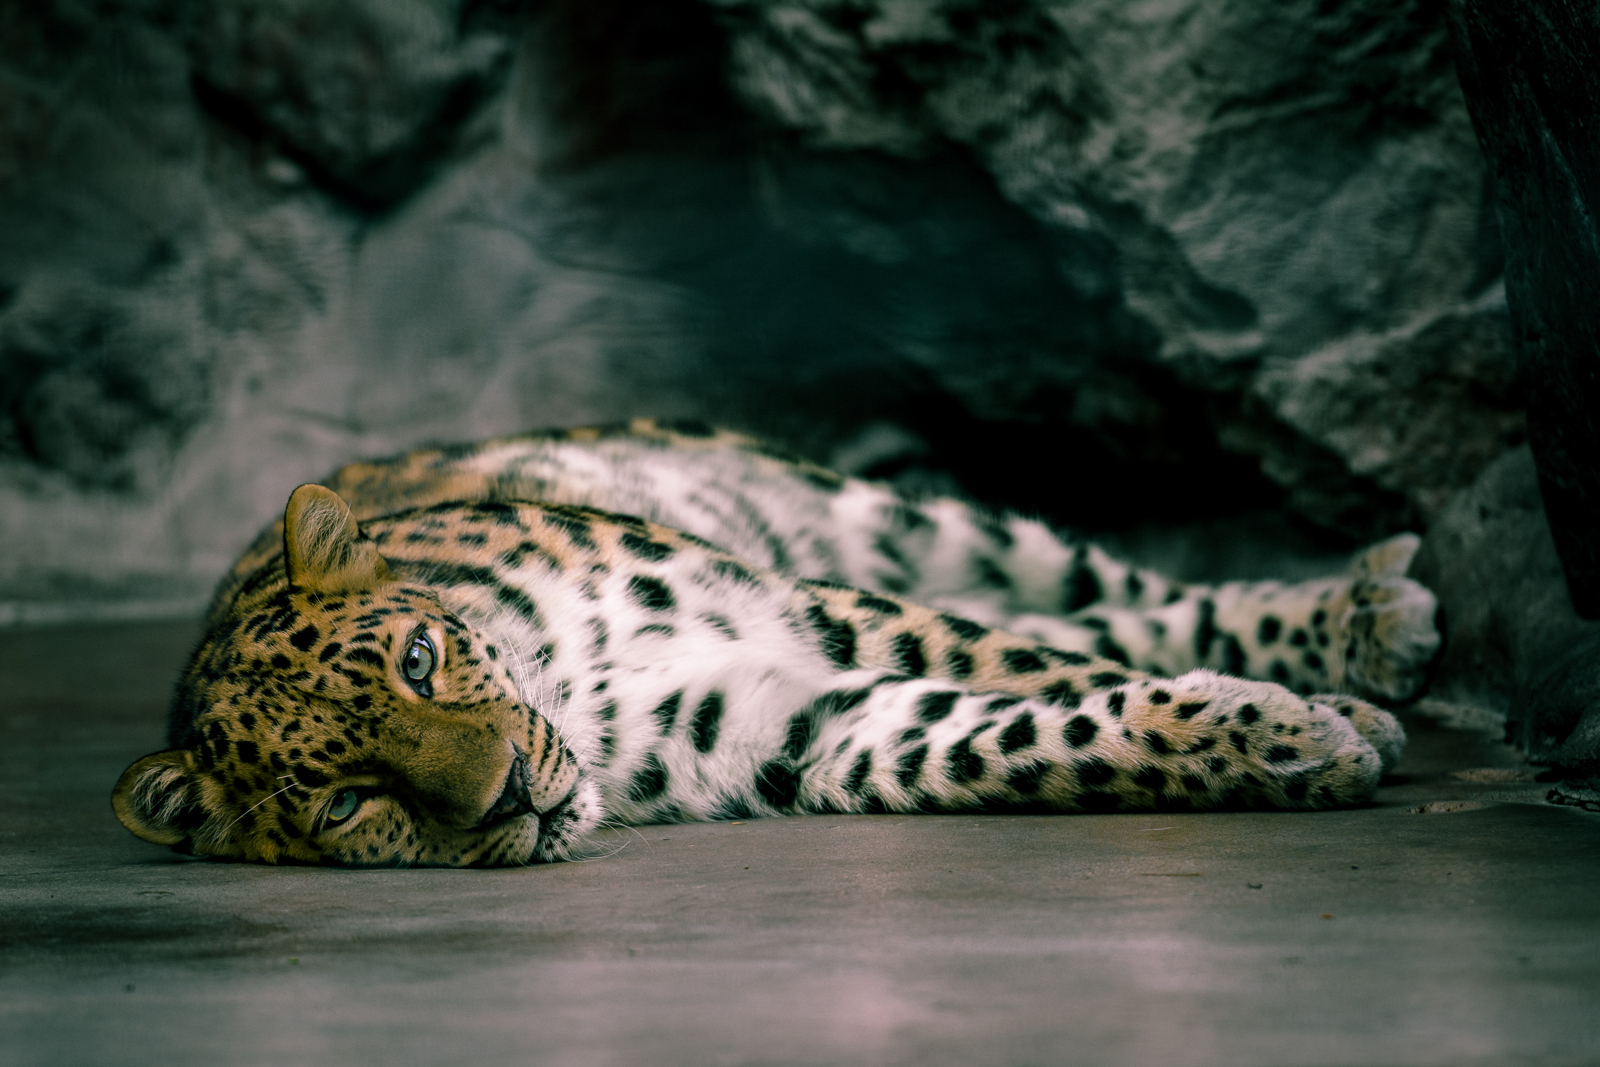 To get the full effect of the leopard's gaze, I had to shift my viewpoint so that I was on the same level.